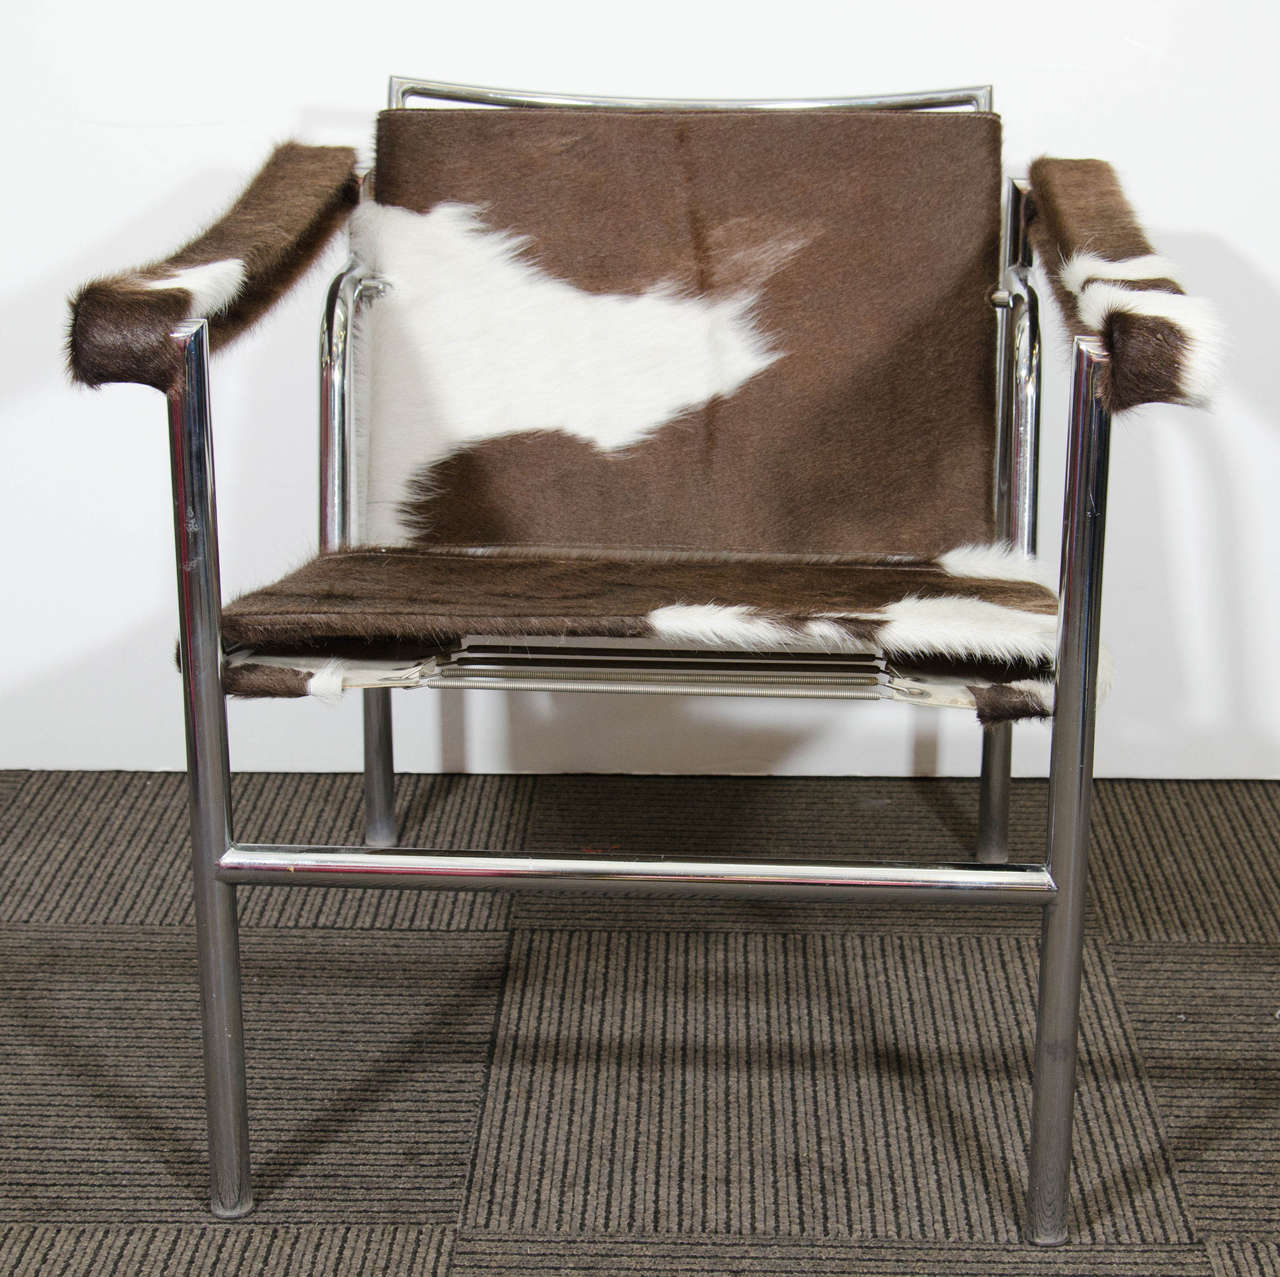 Midcentury le corbusier sling chair newly reupholstered in for Reupholstered furniture for sale